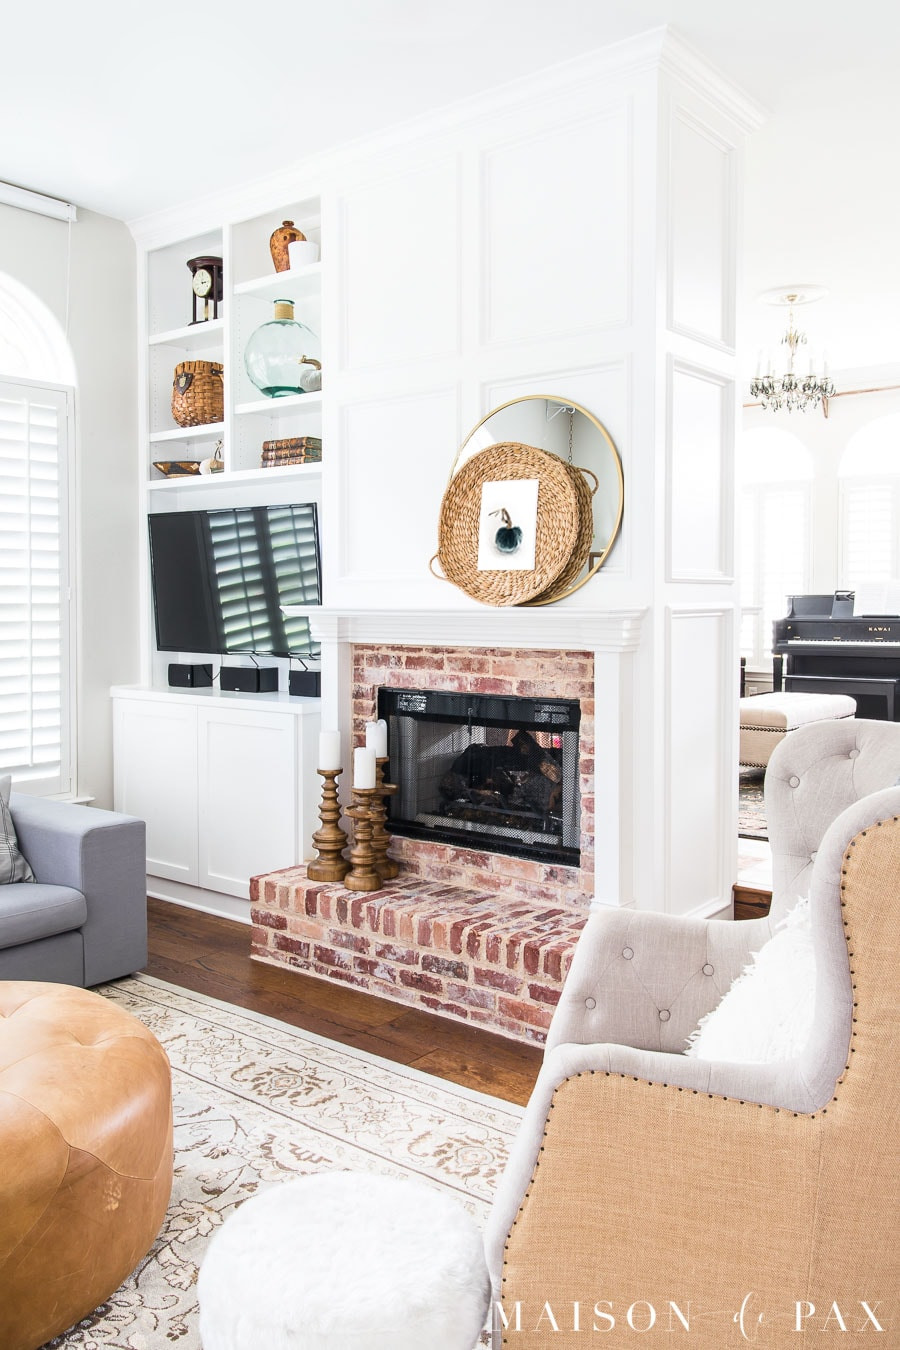 White fireplace molding and antique brick fireplace- Maison de Pax